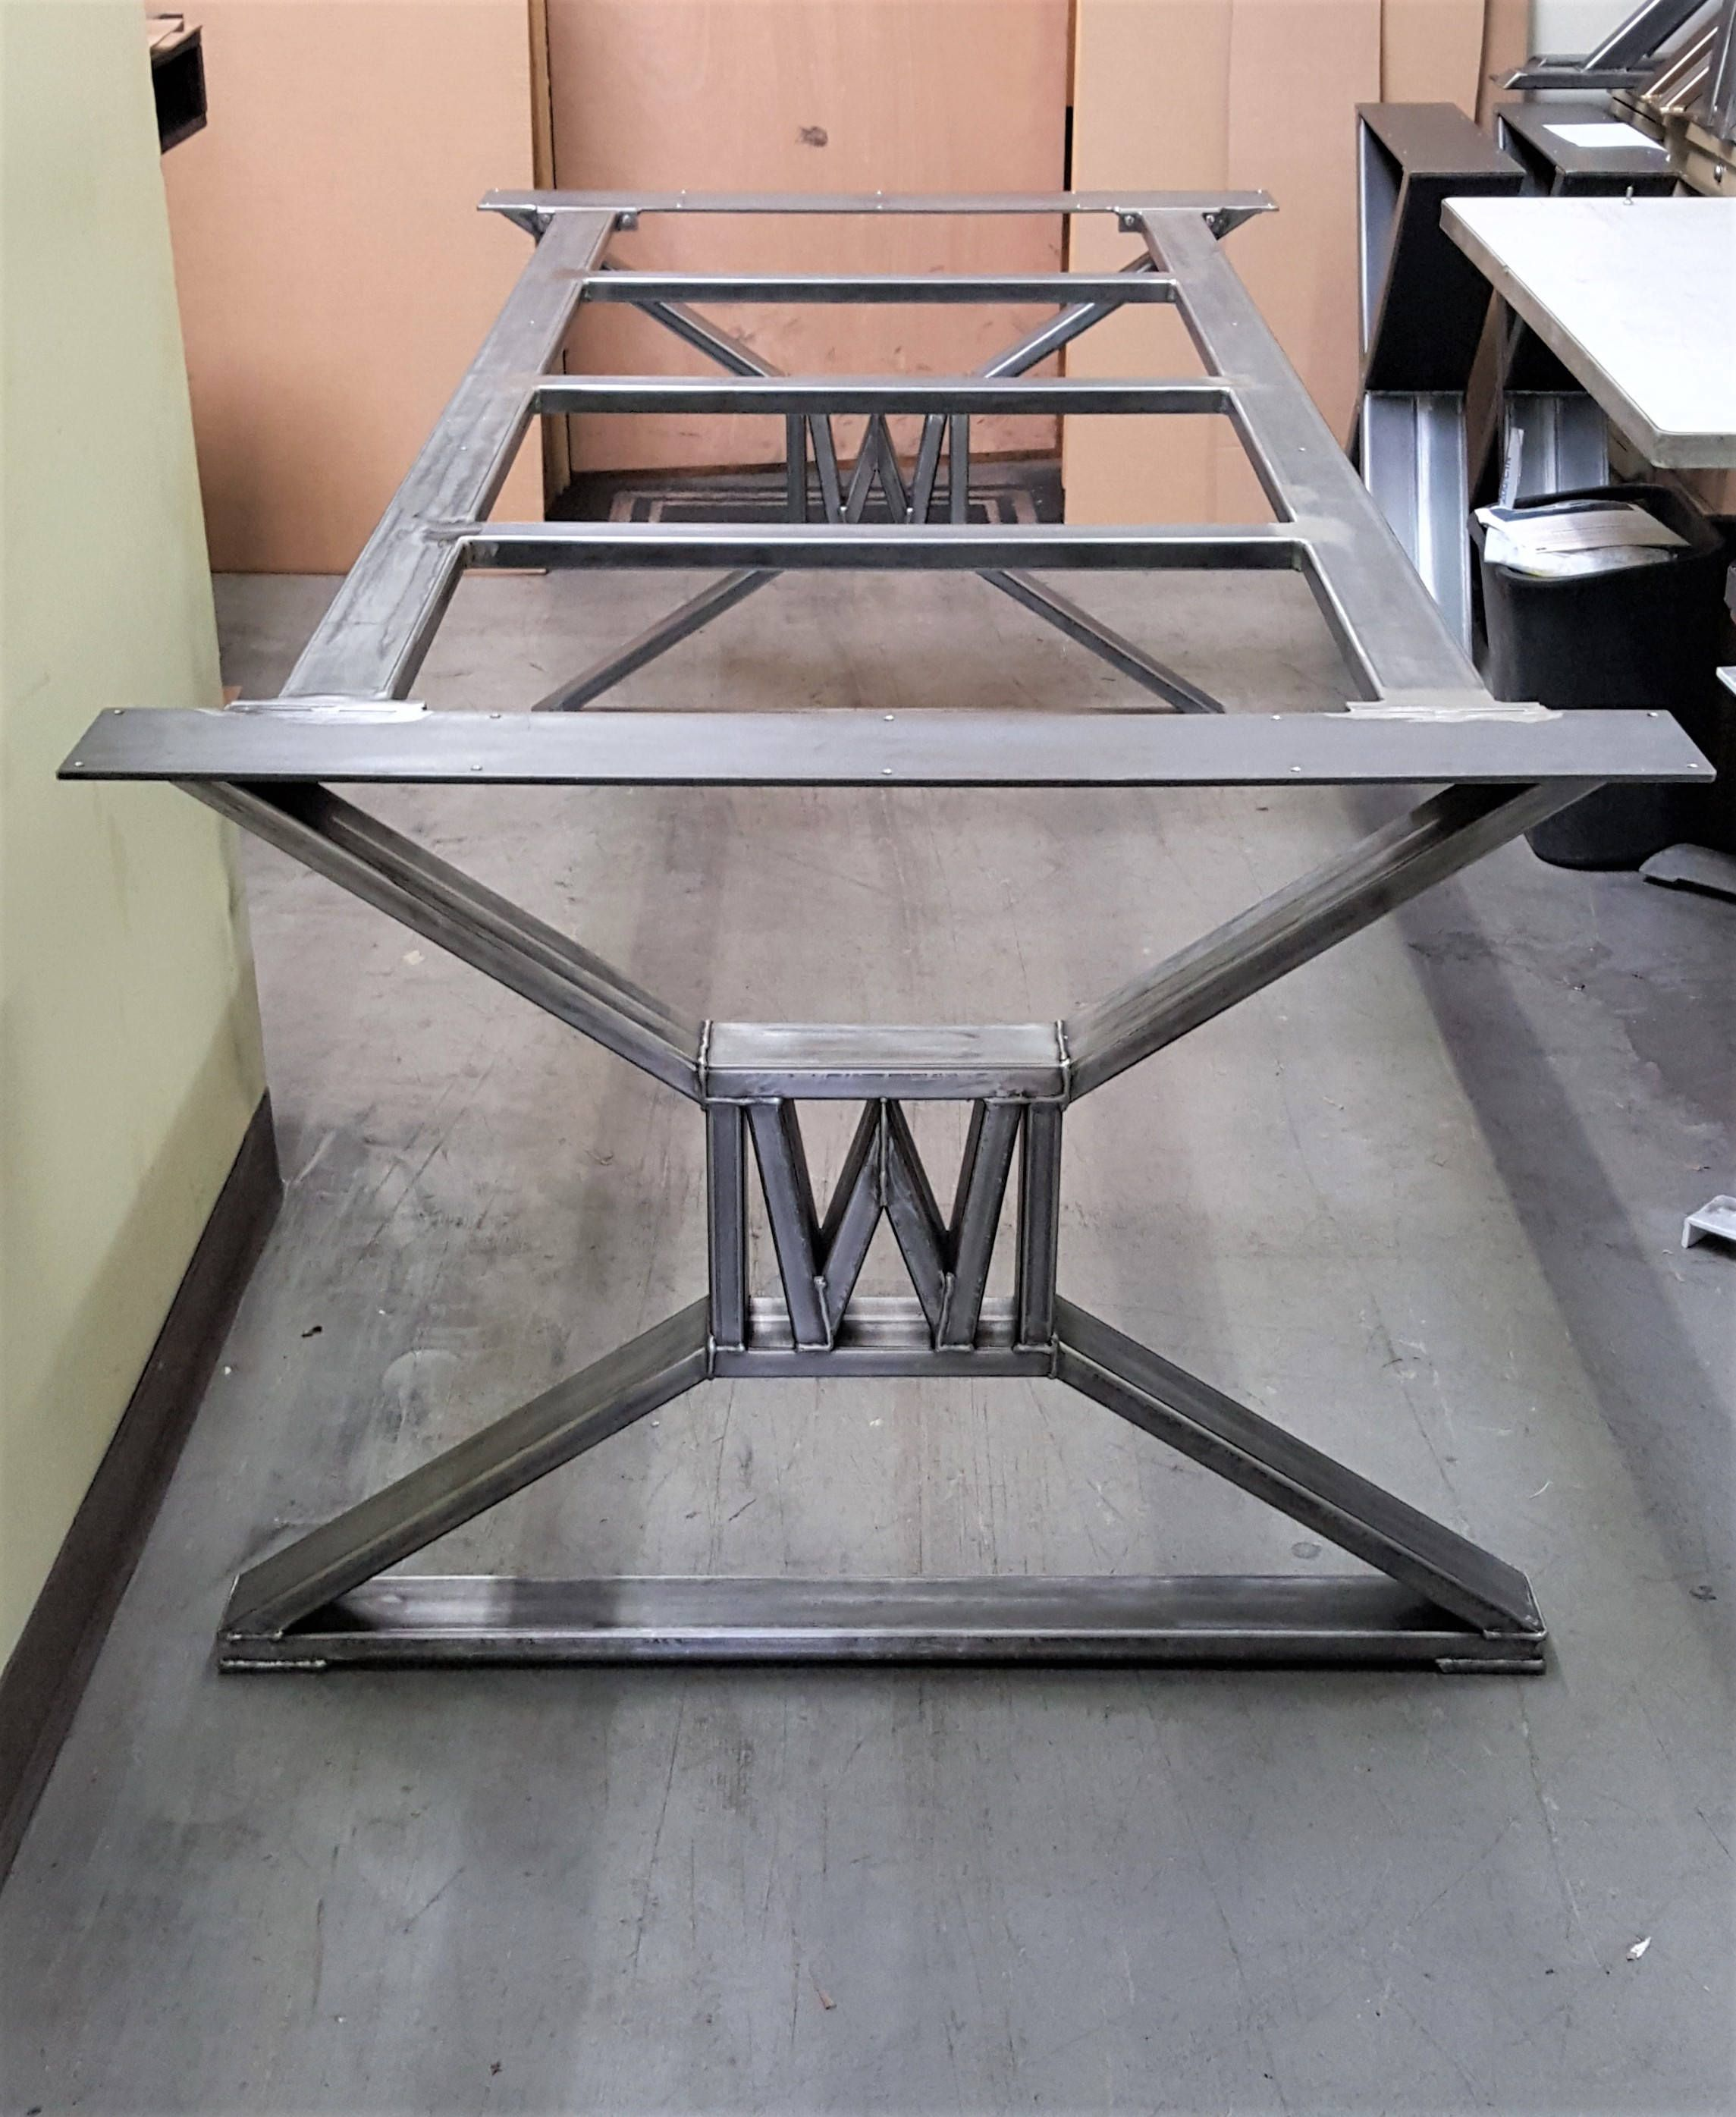 Modern Industrial Dining Table Legs With Builded W Model